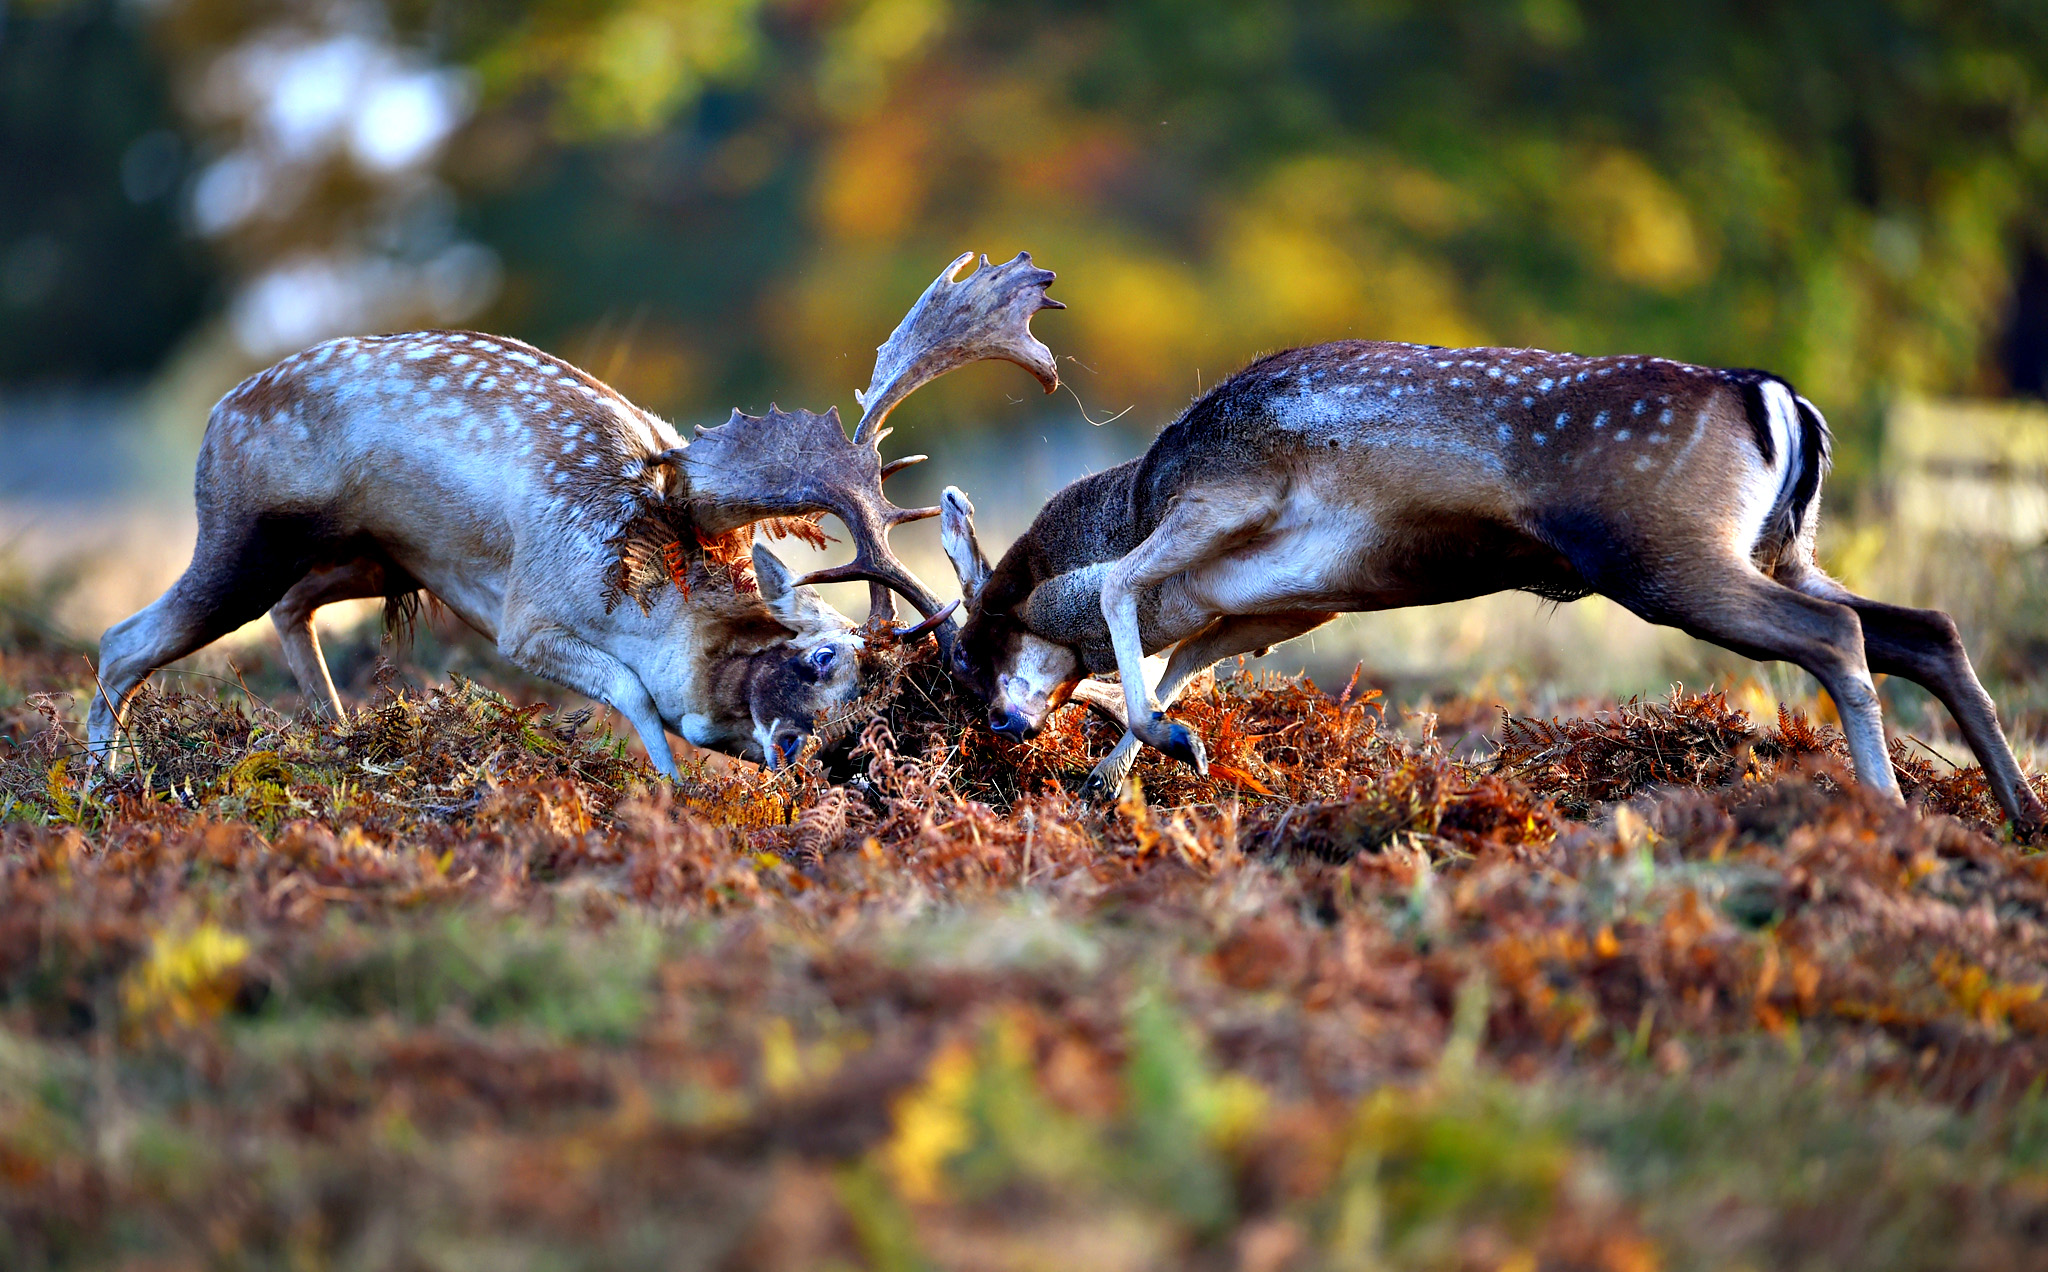 Fallow deer challenge each other during the rutting season on October 17, 2014 in Bradgate Park, Leicestershire, United Kingdom.  Autumn sees the start of the 'Rutting' season, stags can be heard roaring and barking in an attempt to attract females known as bucks. The larger males can also be seen clashing antlers with rival males.